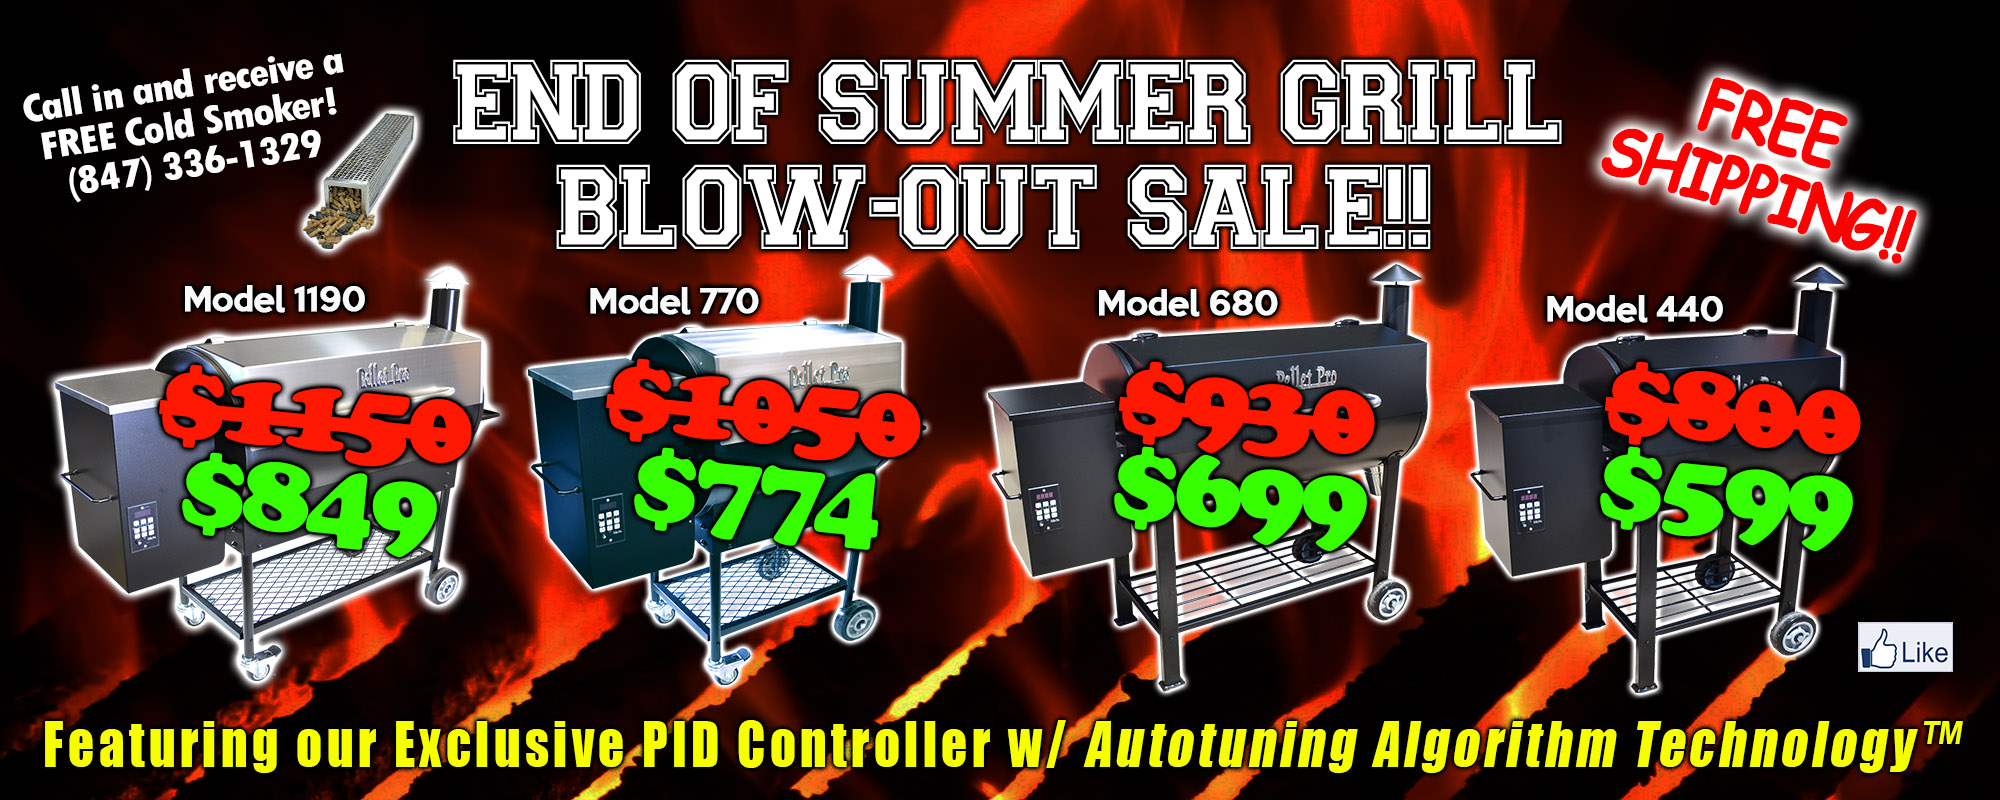 2018 End of Summer Grill Sale